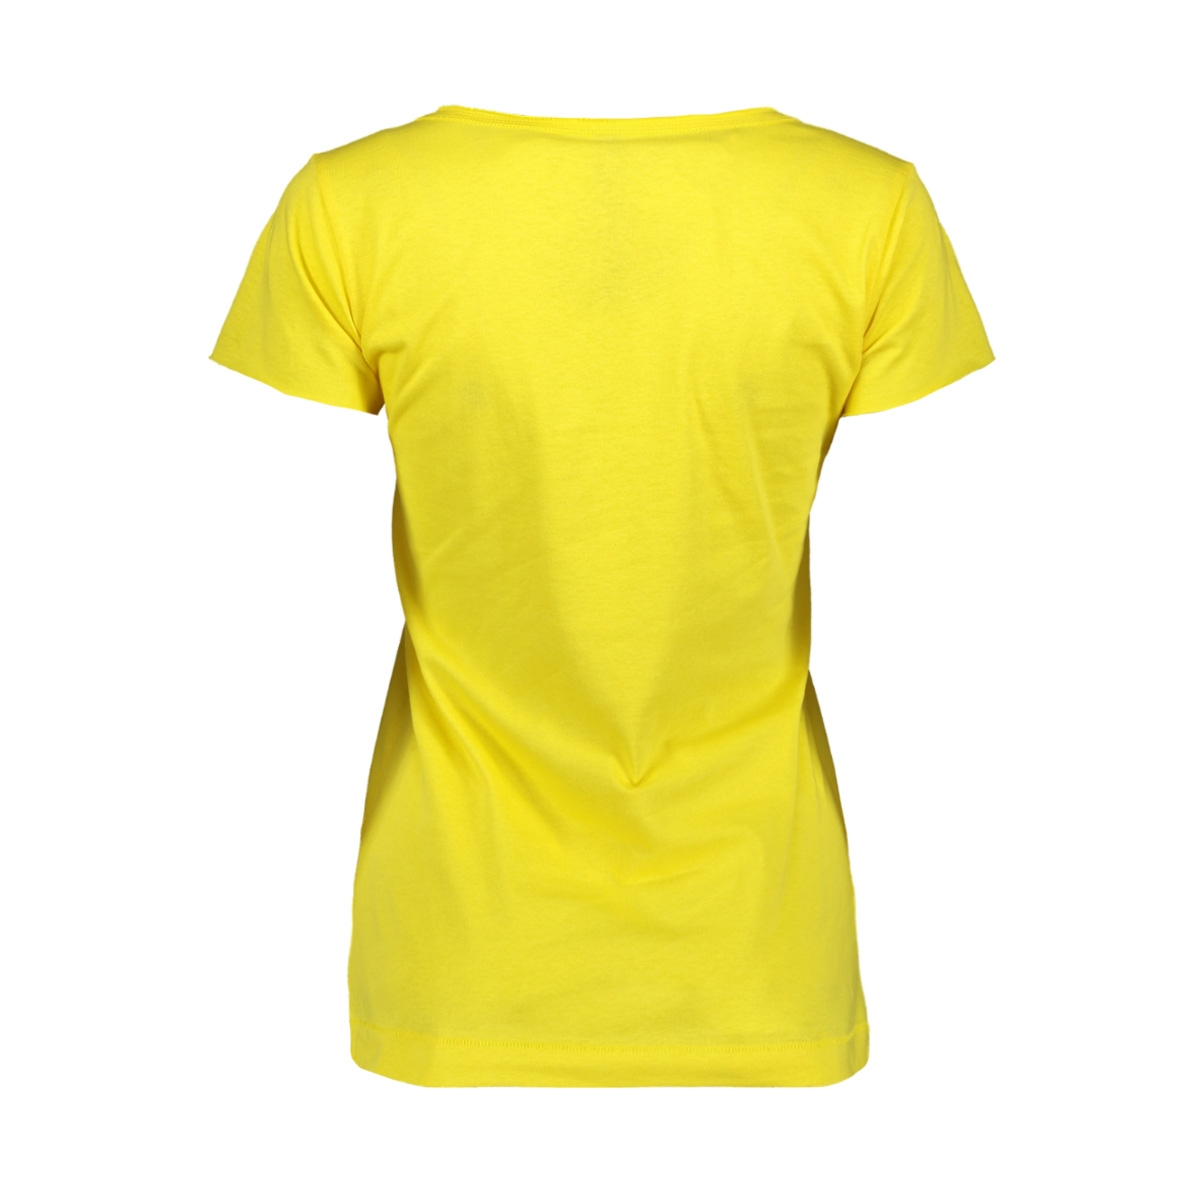 207419101 10 days t-shirt yellow